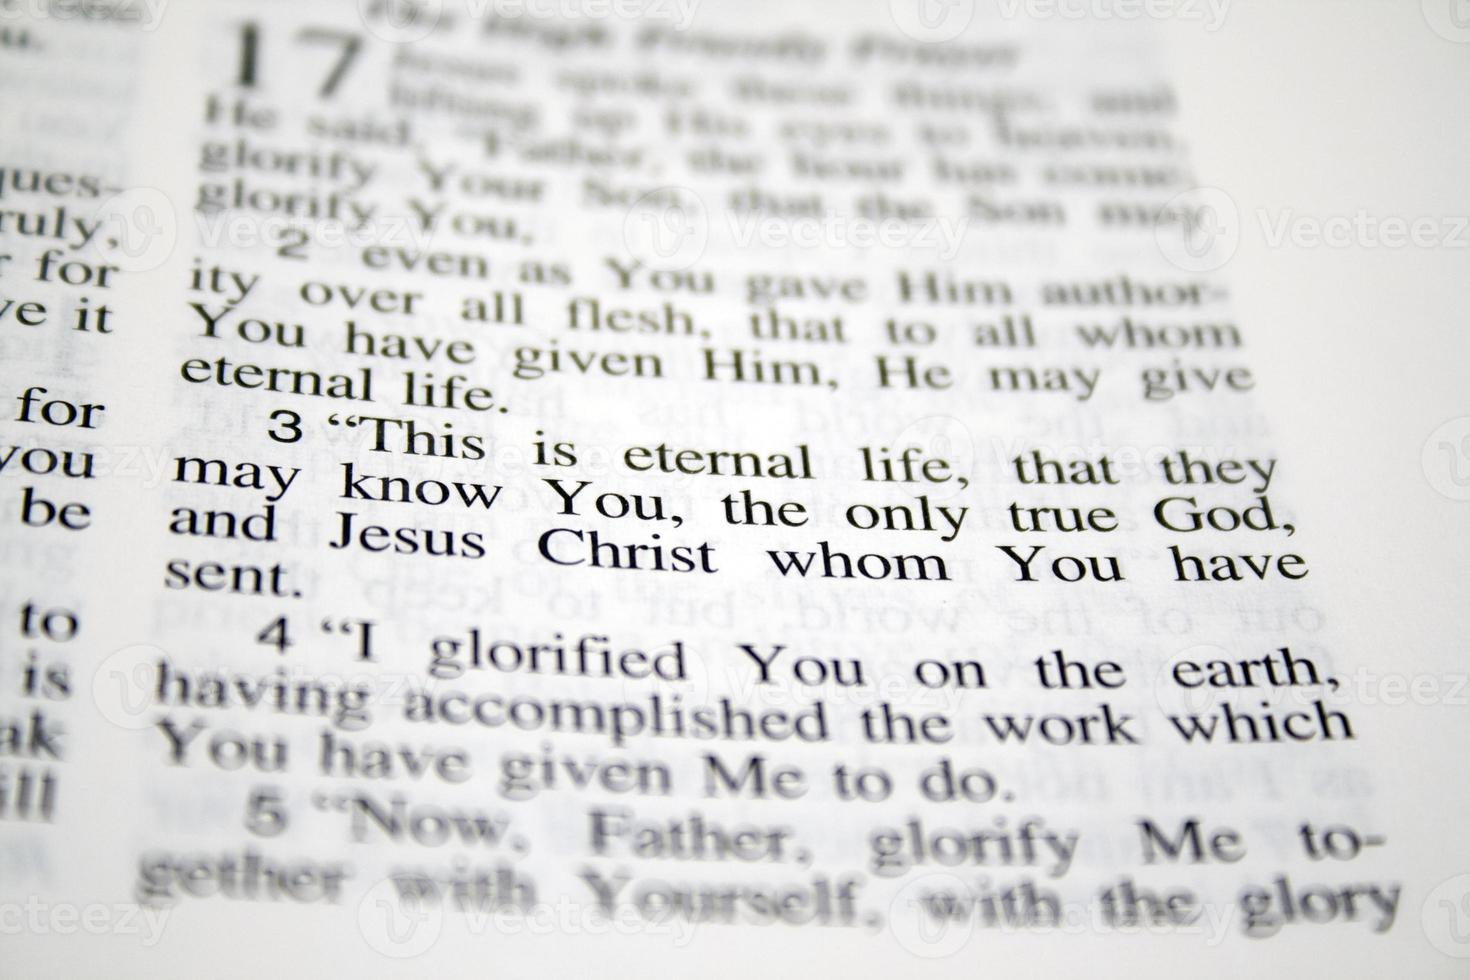 This is eternal life... photo